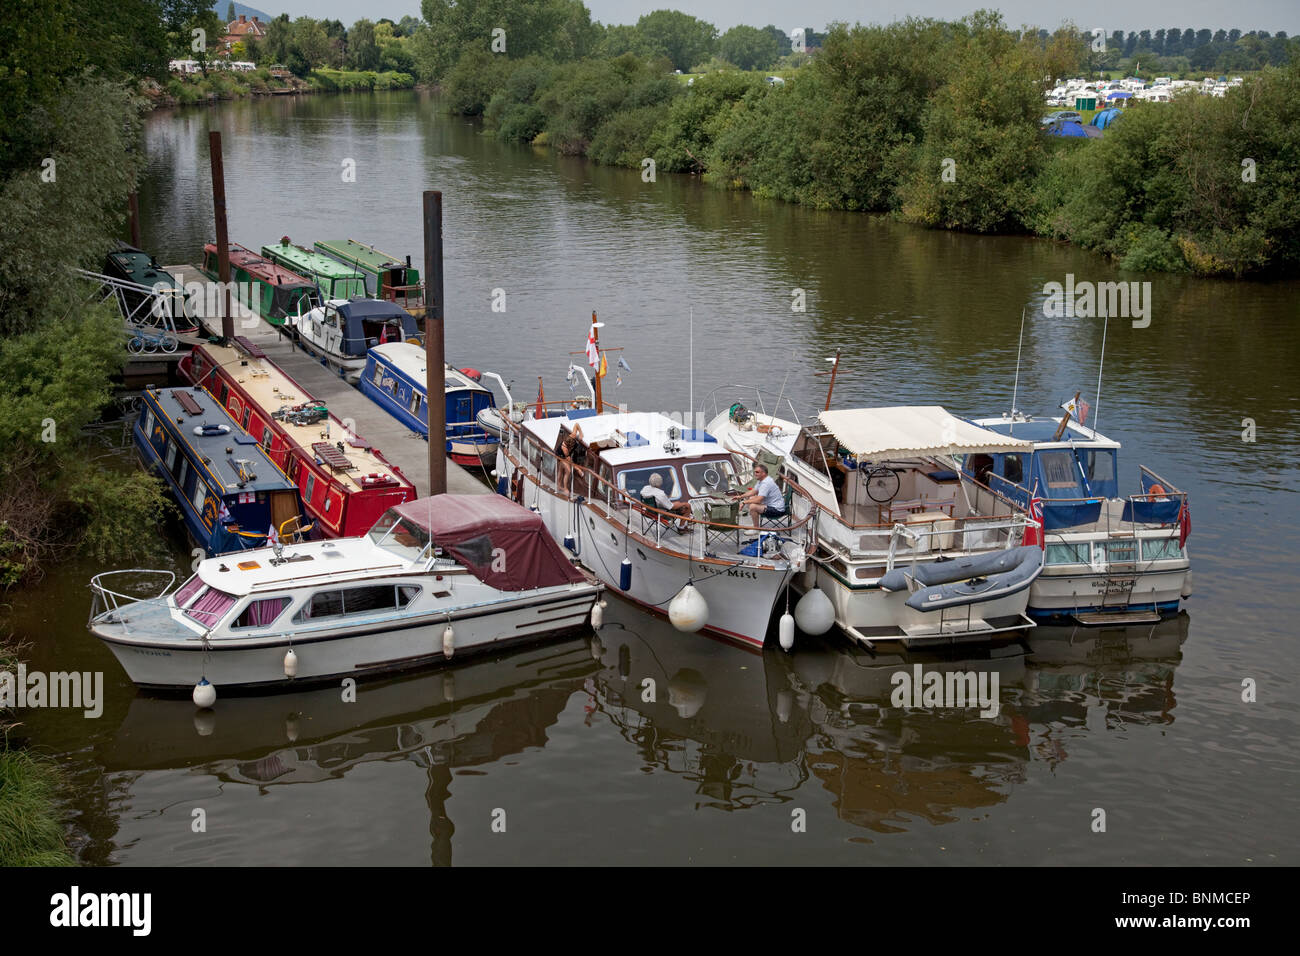 Motor launches and houseboats moored on River Severn Upton upon Severn UK Stock Photo